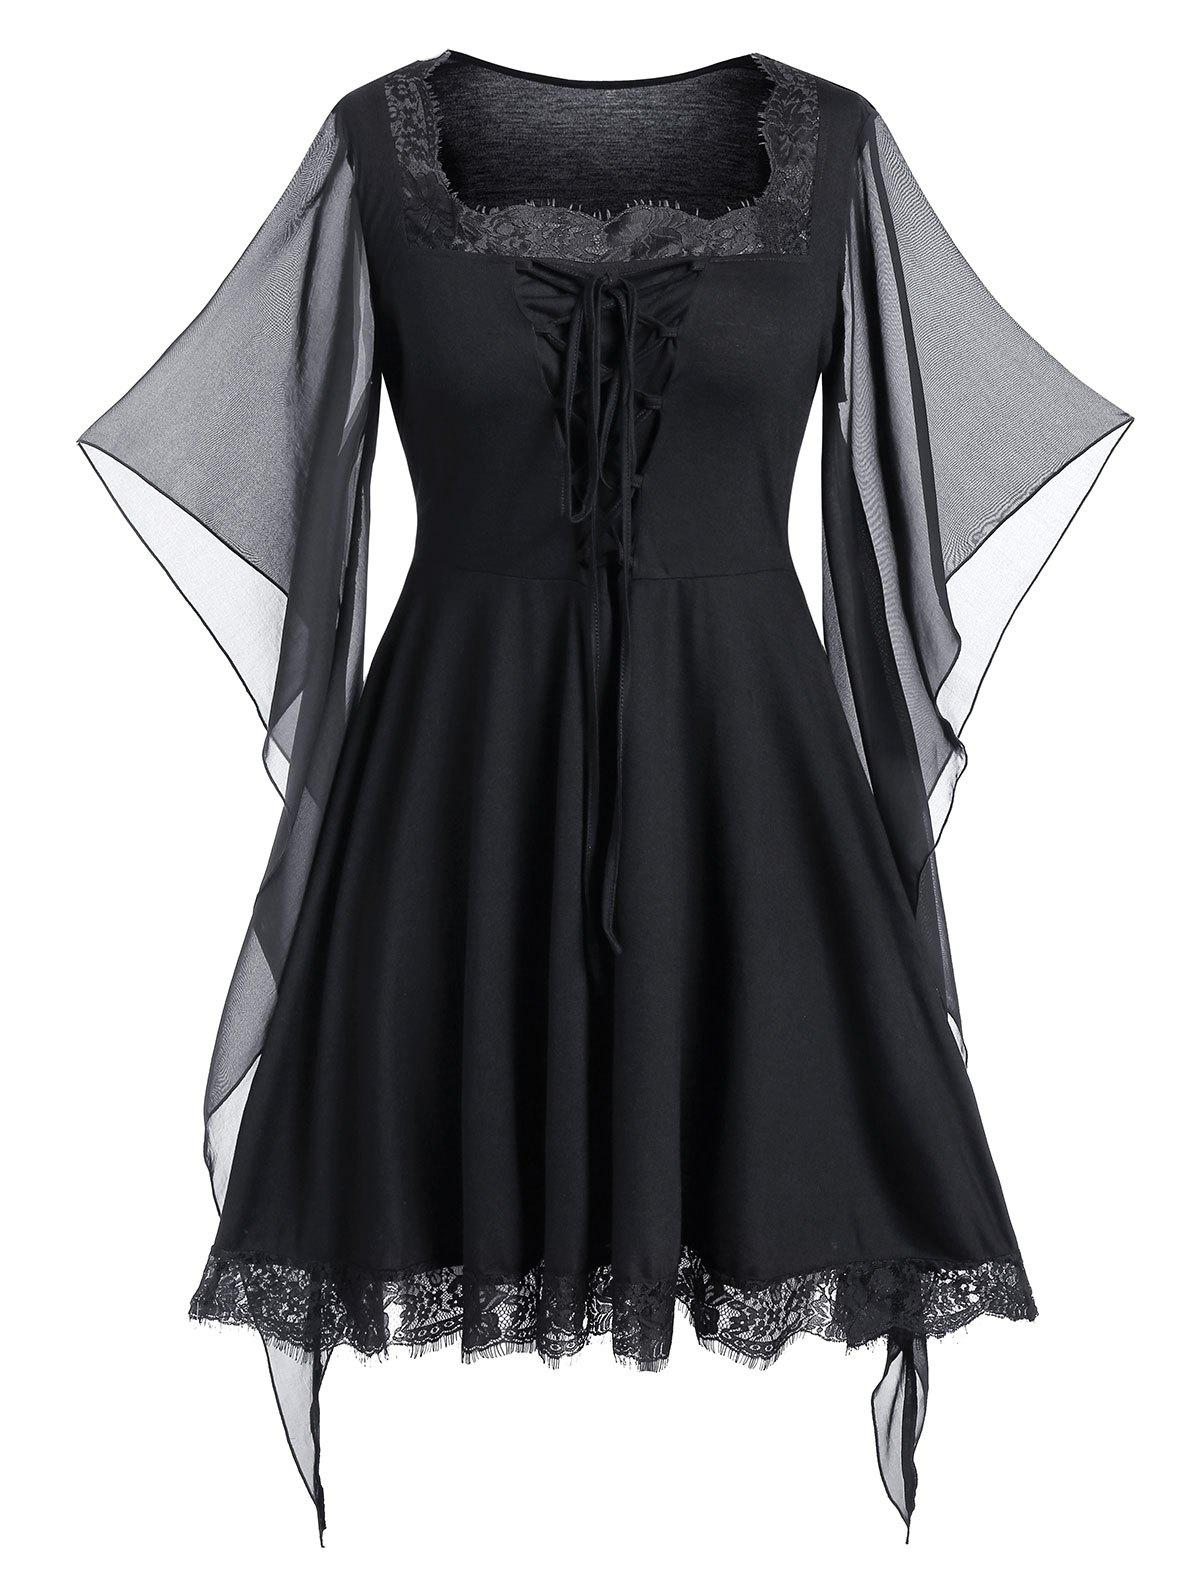 Plus Size Halloween Lace Up Butterfly Print Gothic Top - BLACK 4X